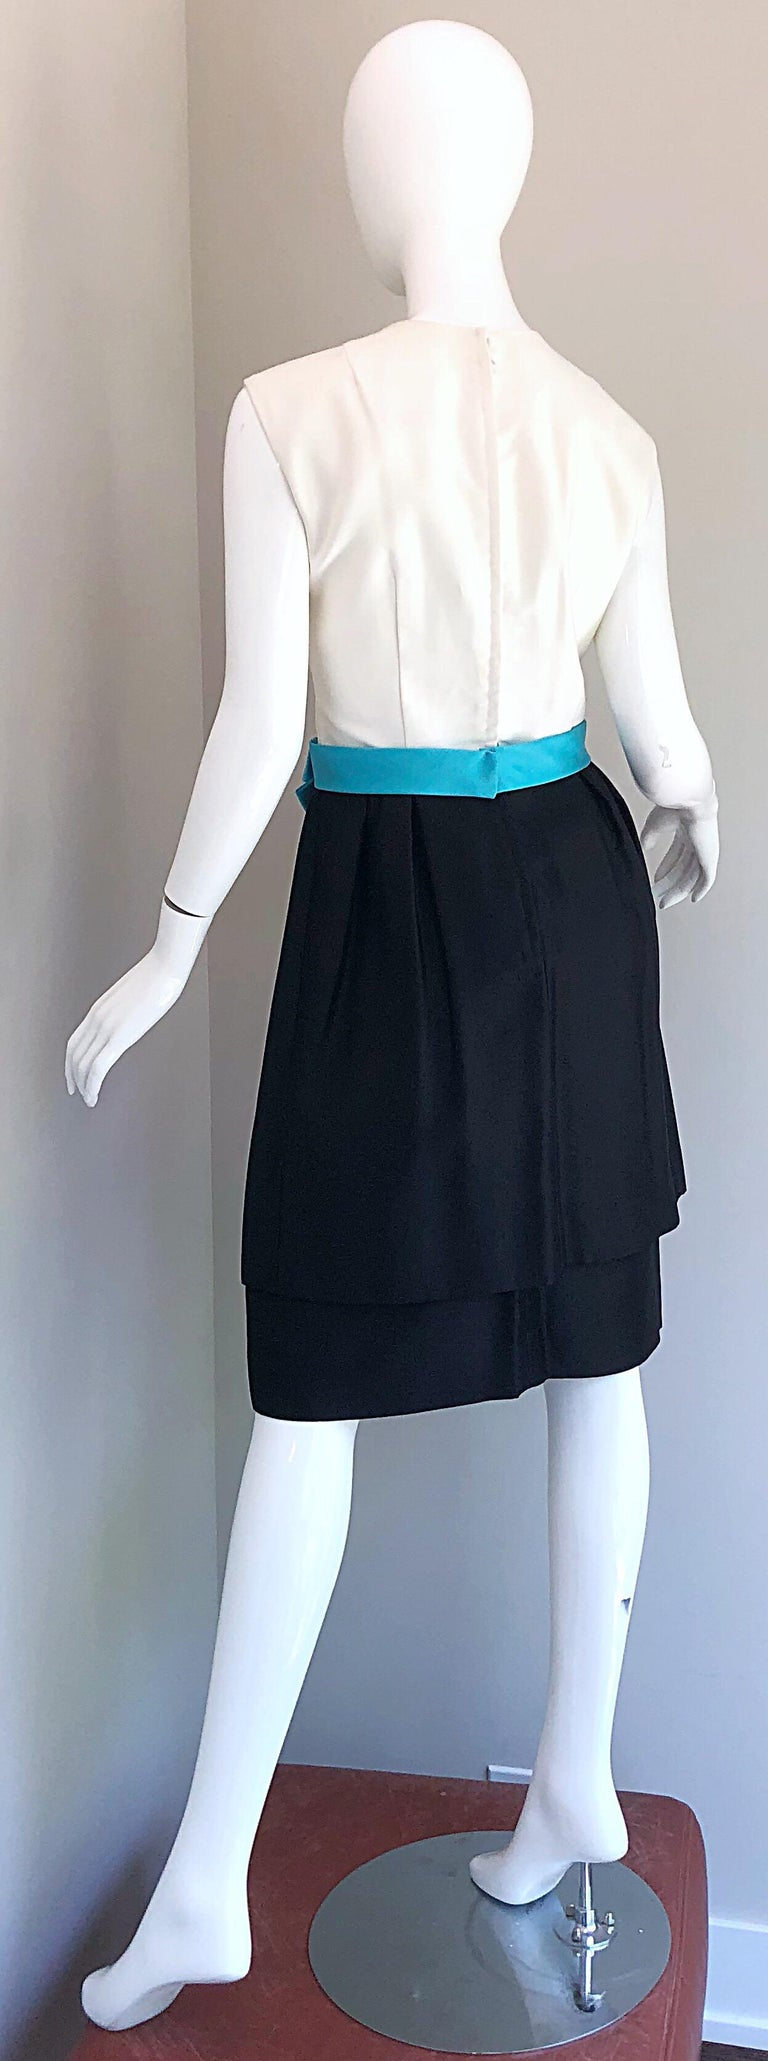 1950s B. Altman Black and White + Turquoise Blue Vintage 50s Silk Cocktail Dress For Sale 7